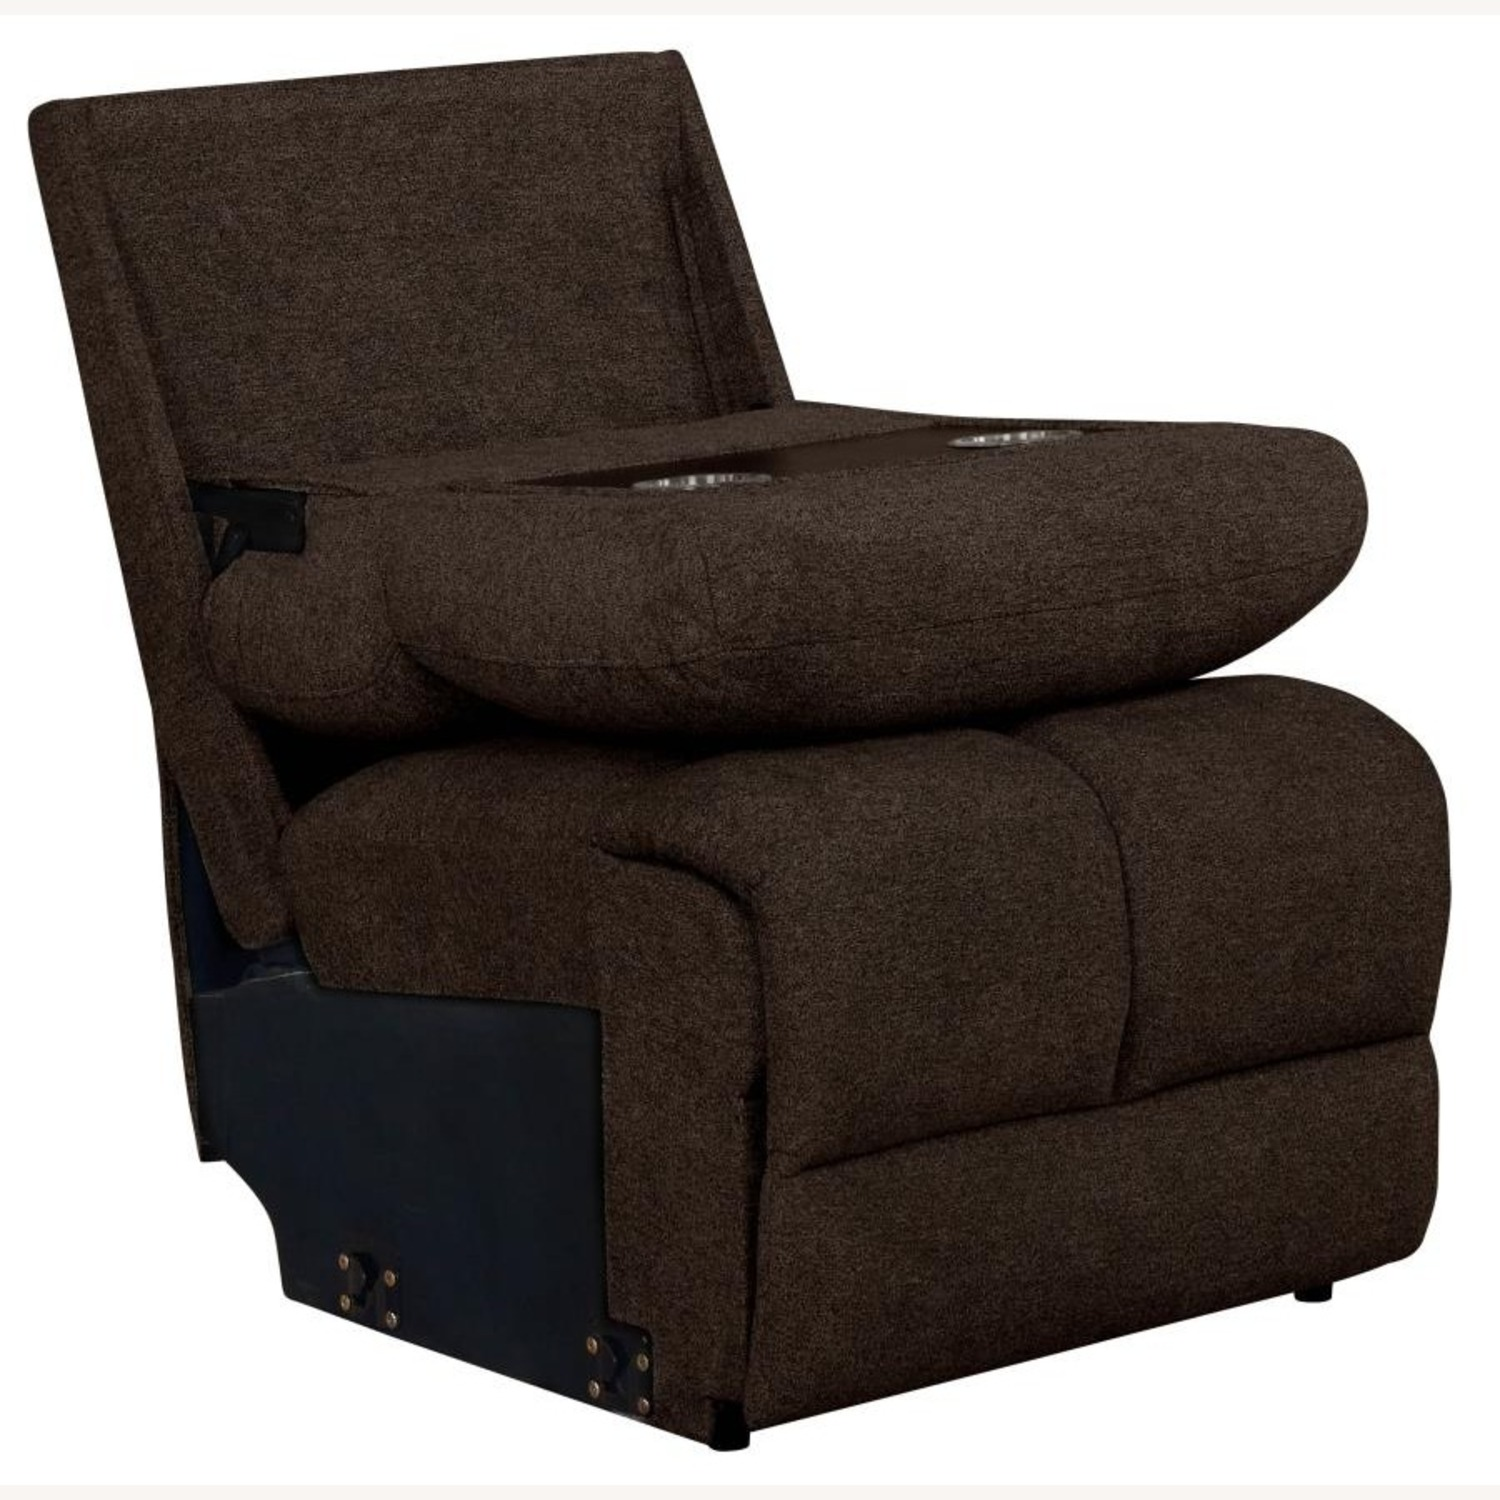 Motion Sectional In Brown Performance Fabric - image-2